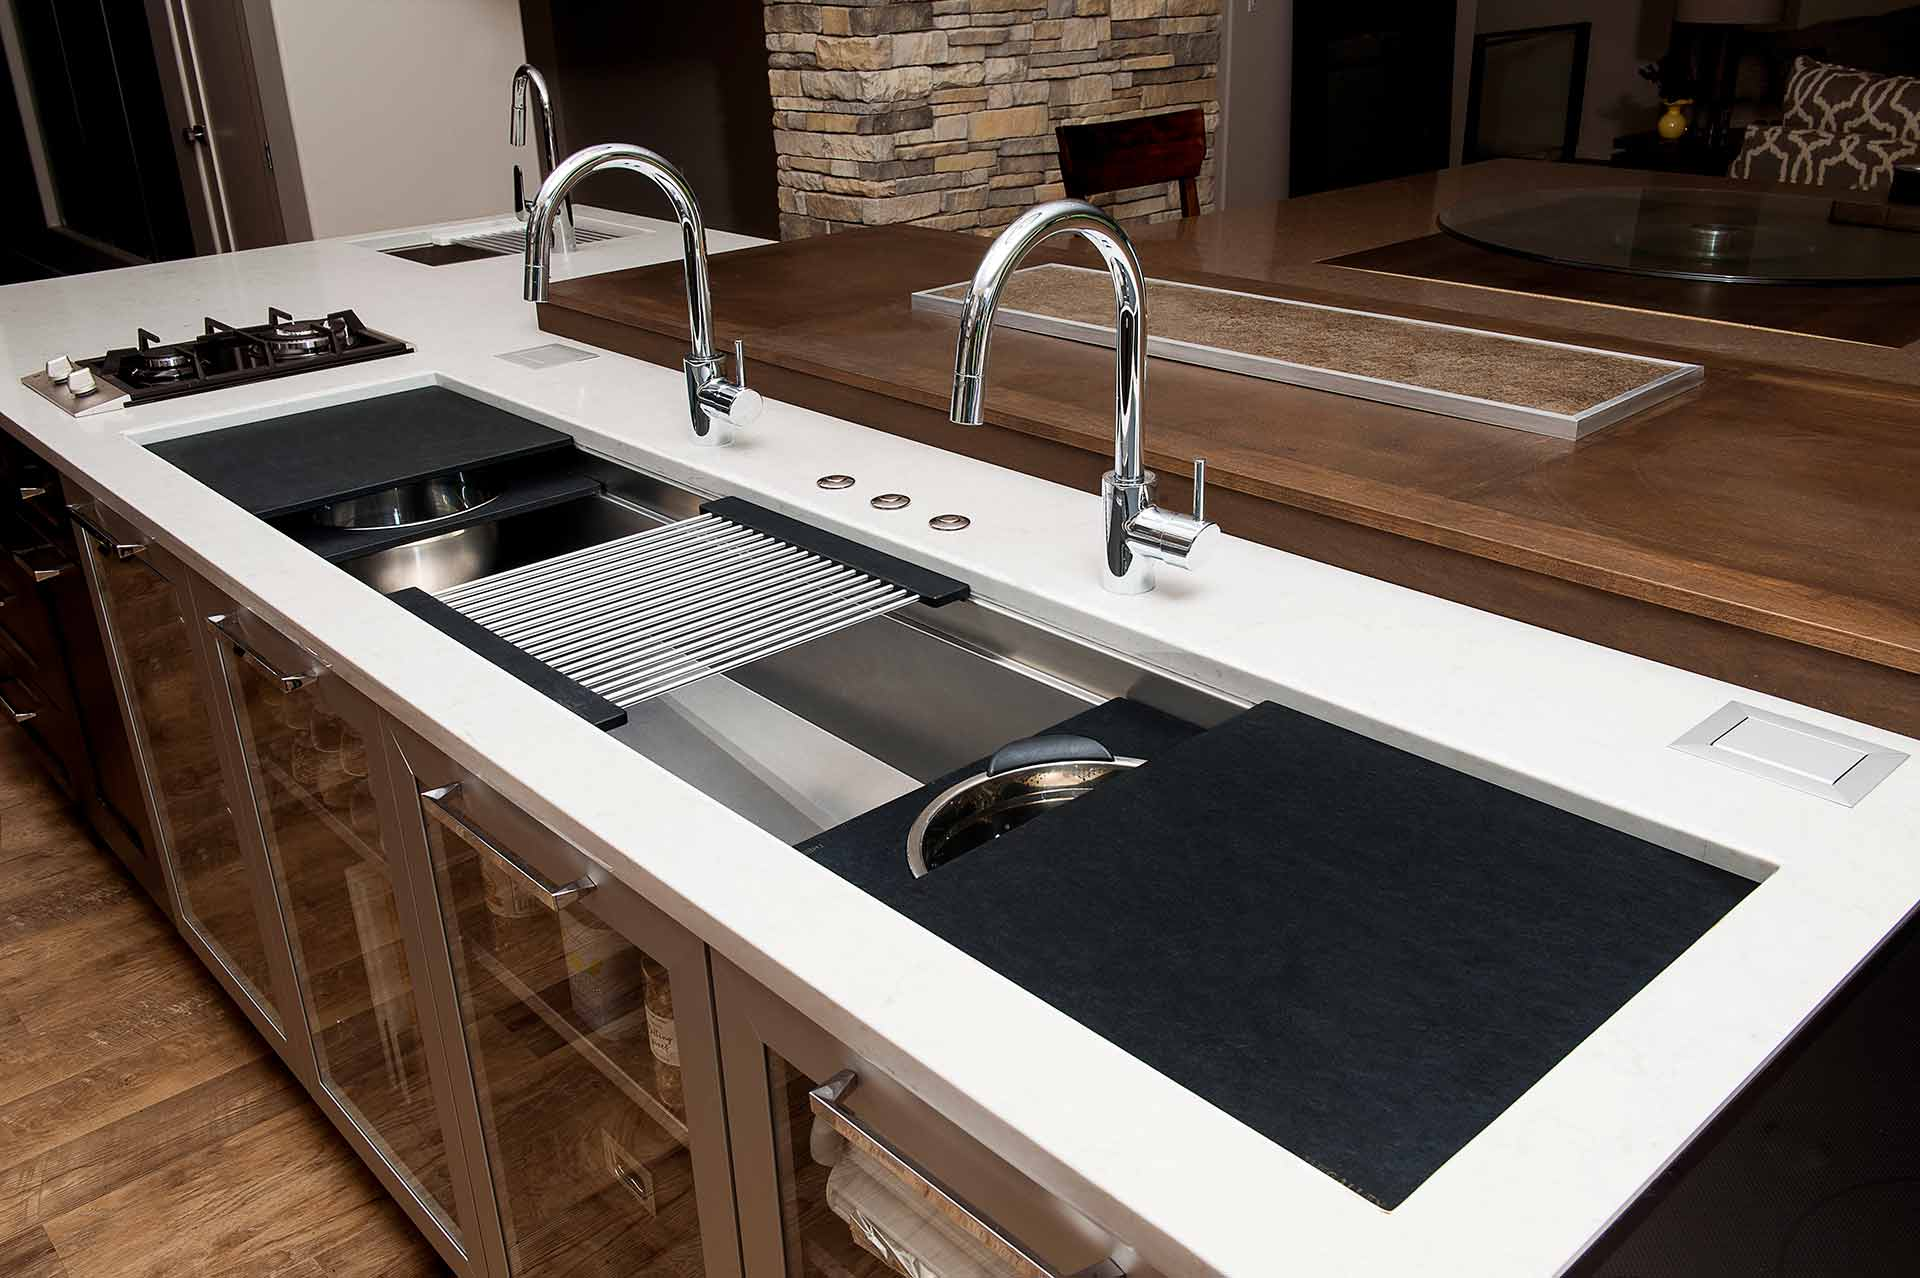 The Galley Reinvent Your Kitchen Sink Focal Point Hardware